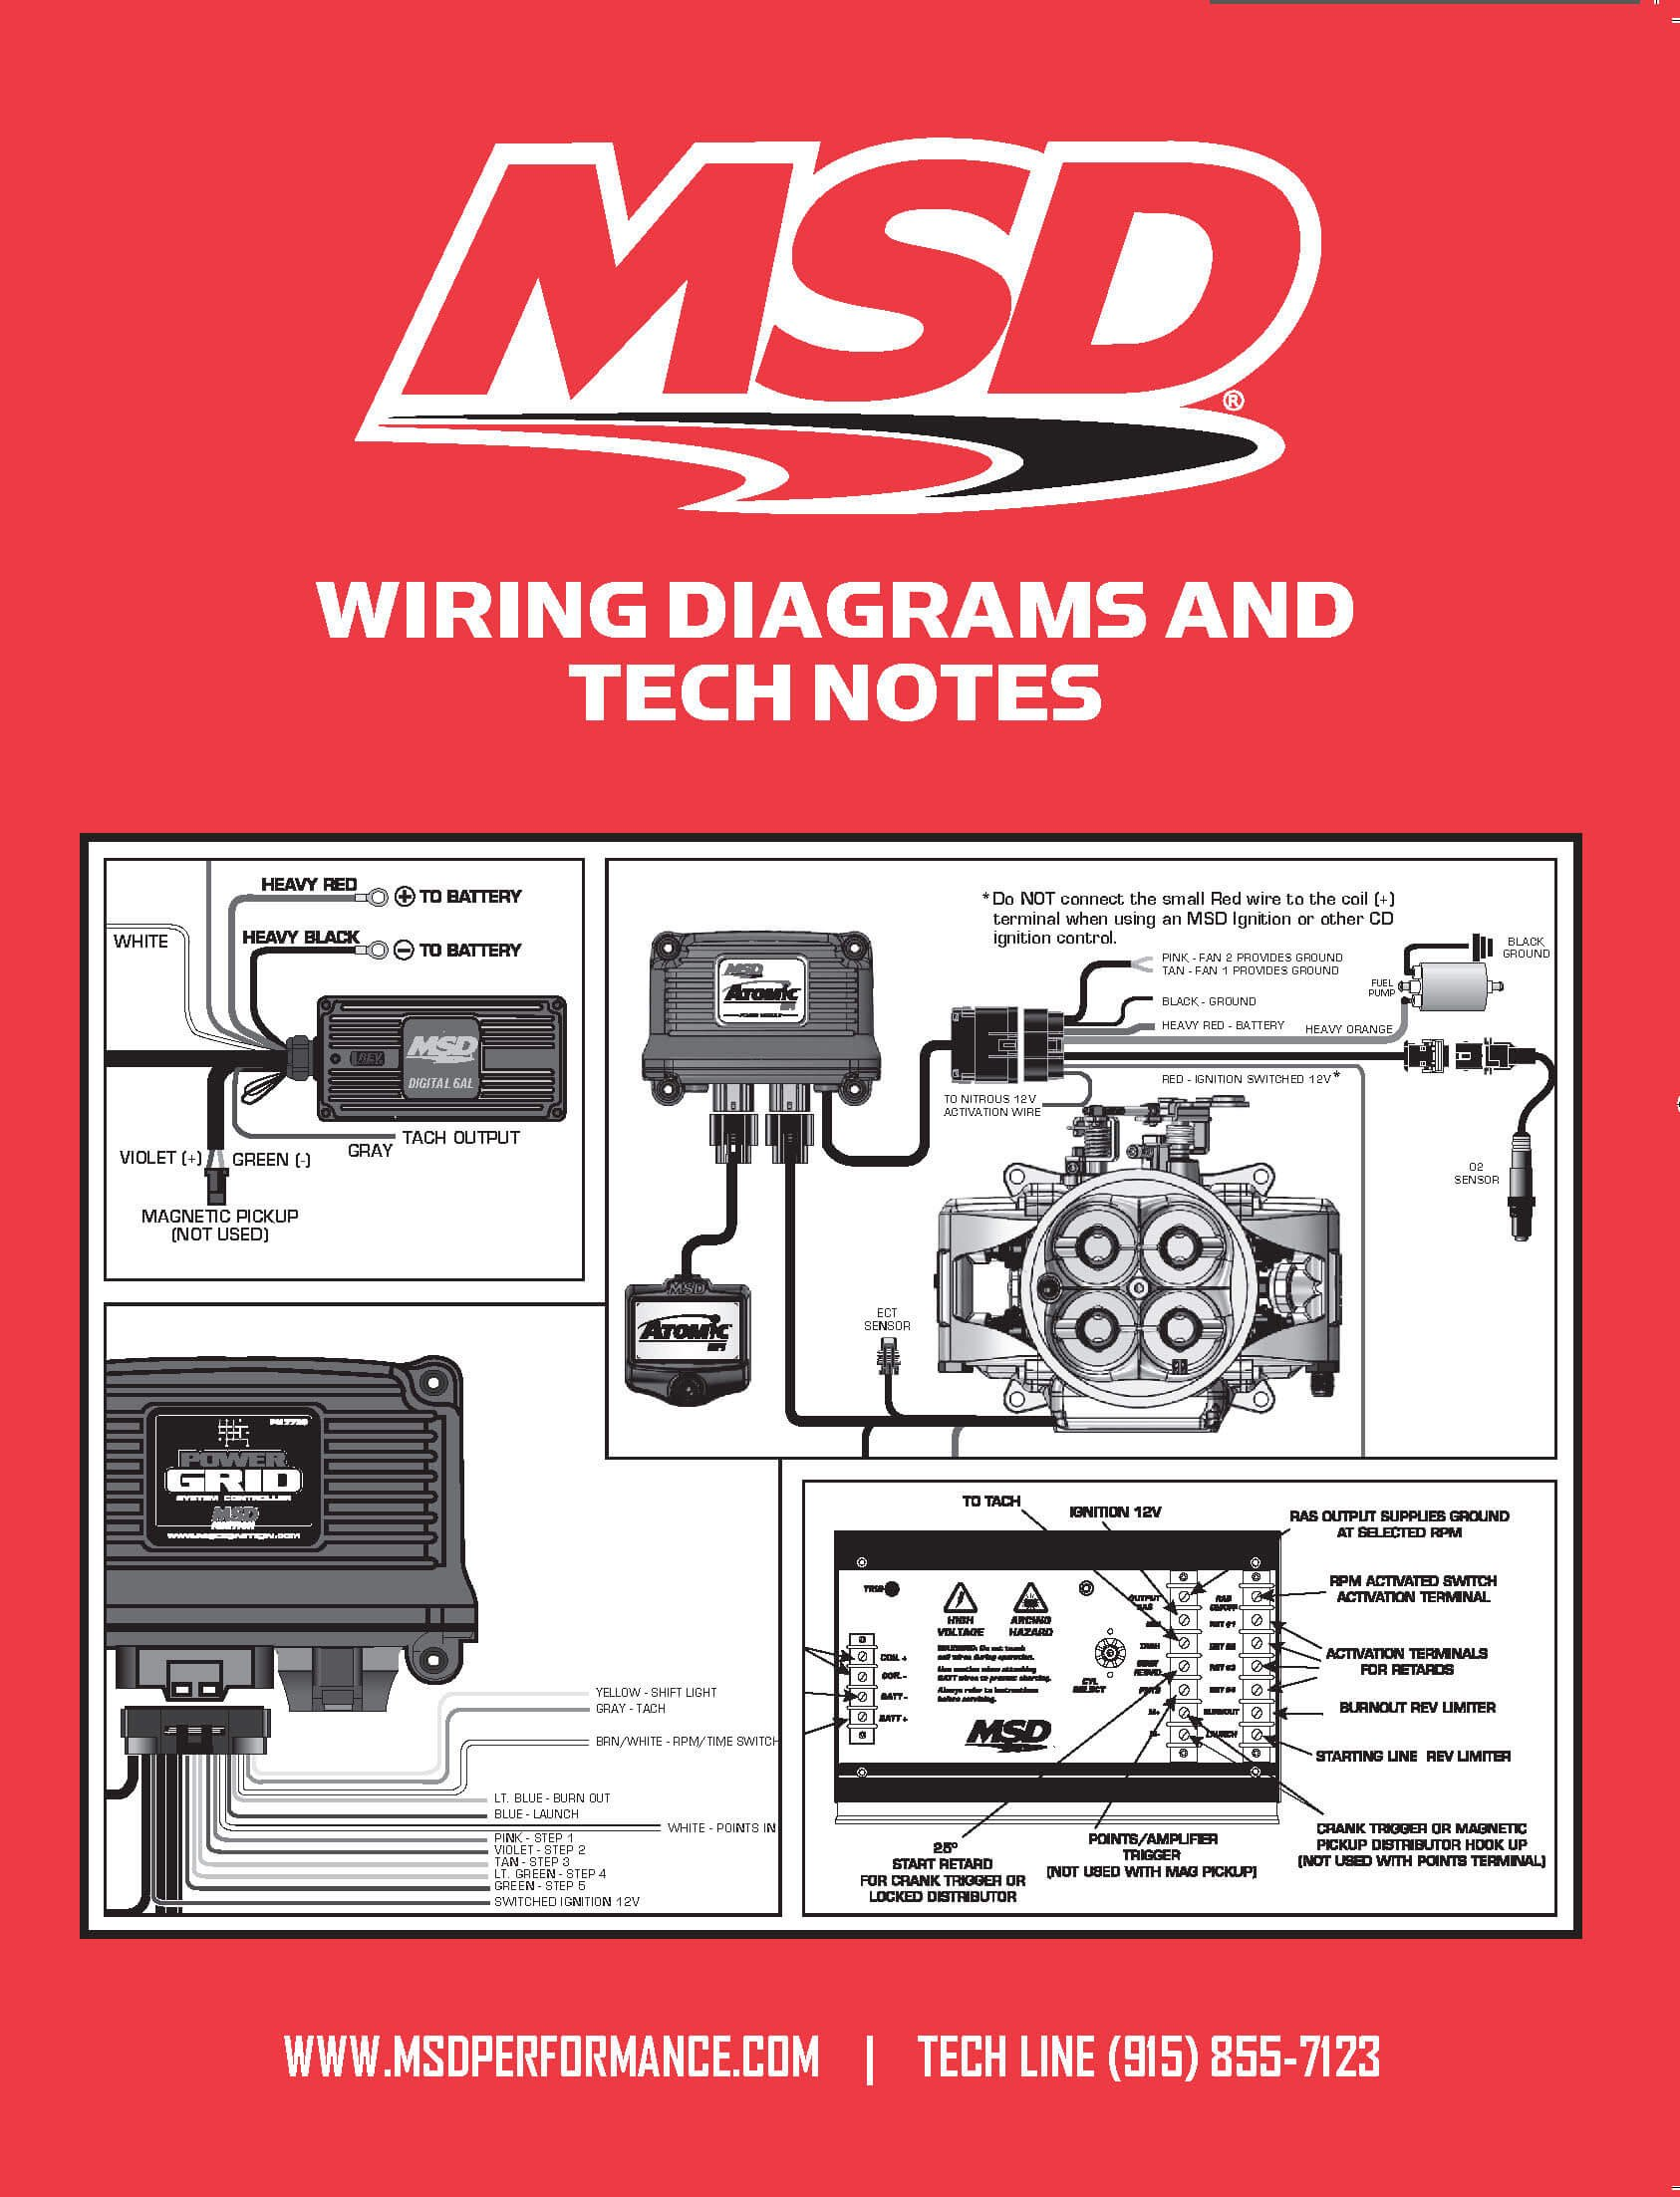 hight resolution of 9615 wiring diagrams and tech notes image